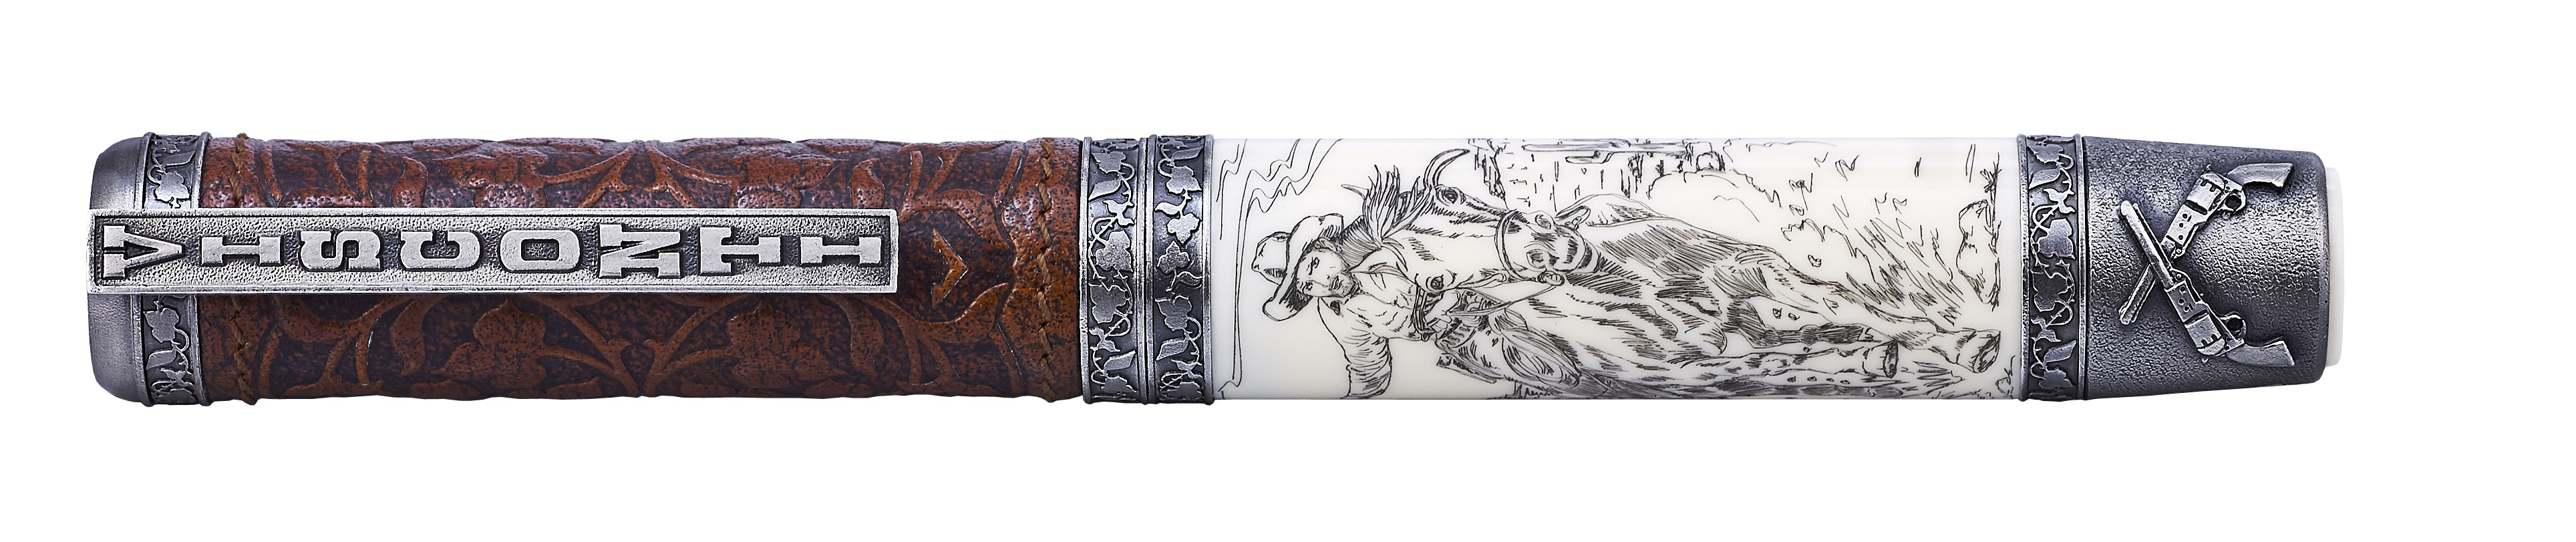 Visconti Wild West pen | JCK On Your Market